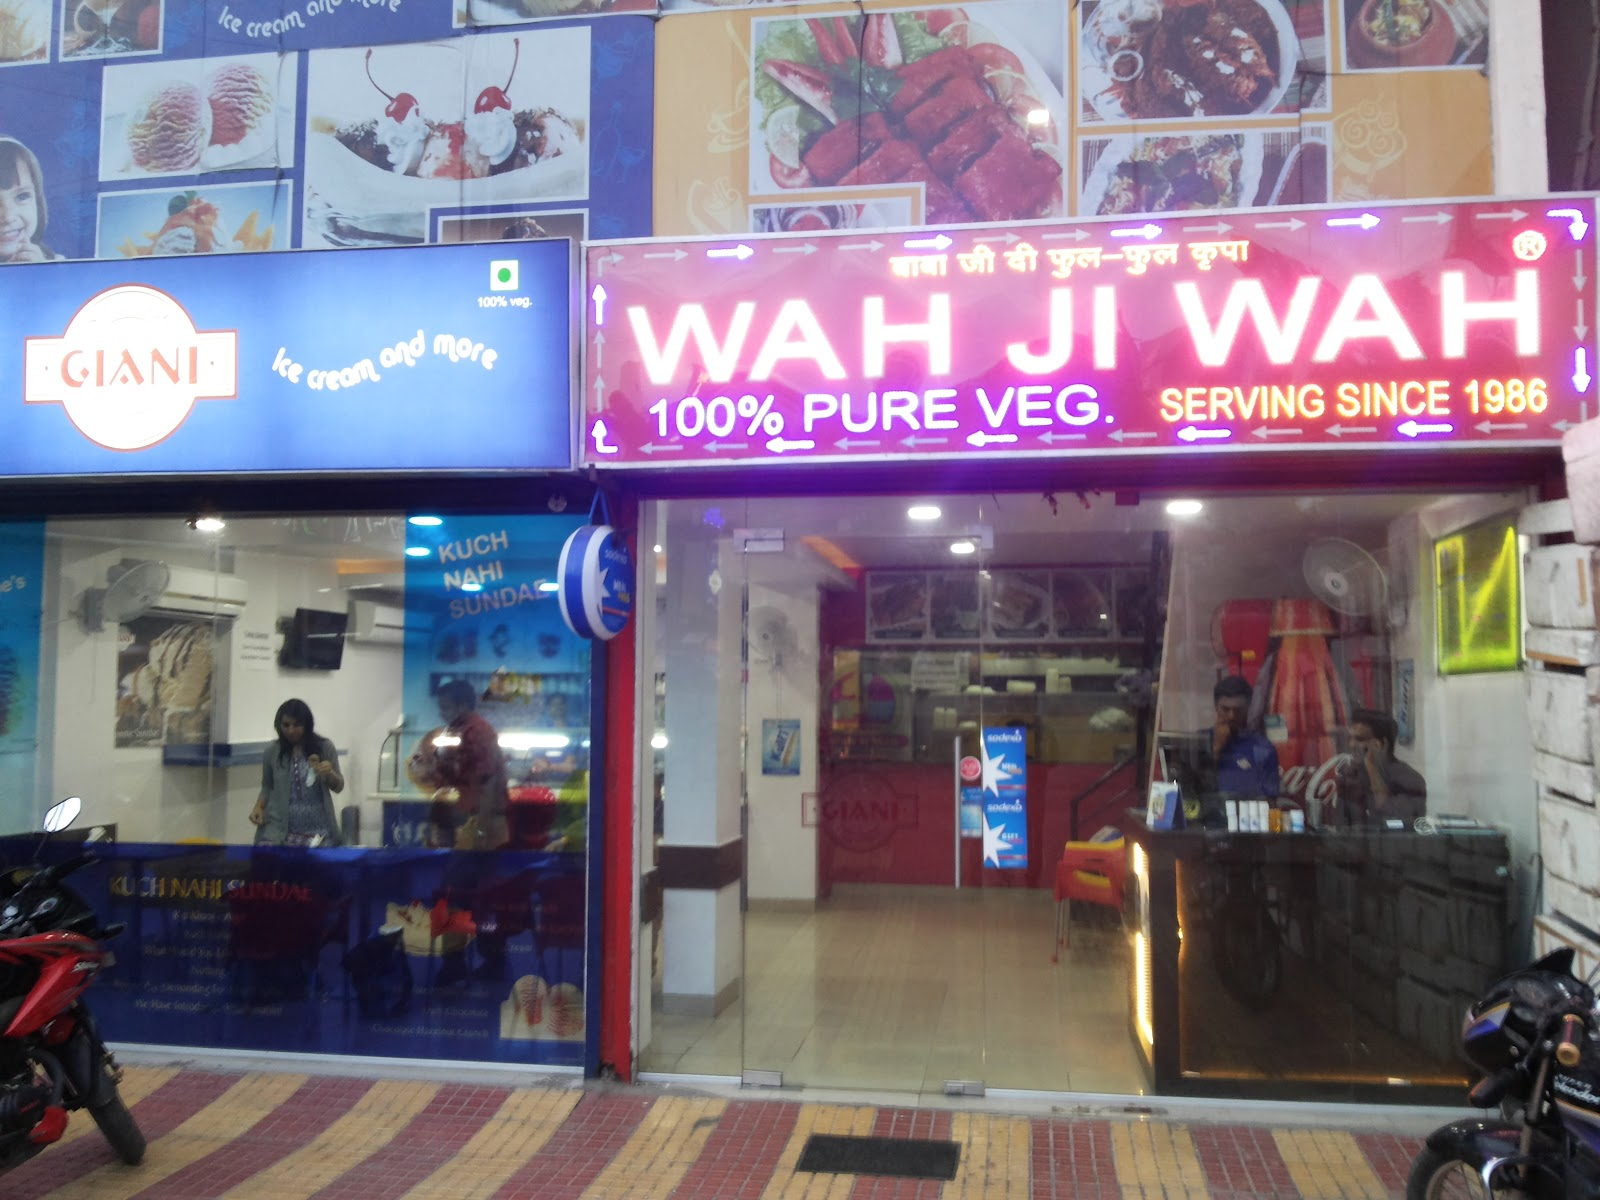 Delicious snacks at Wah Ji Wah with Giani Sundaes